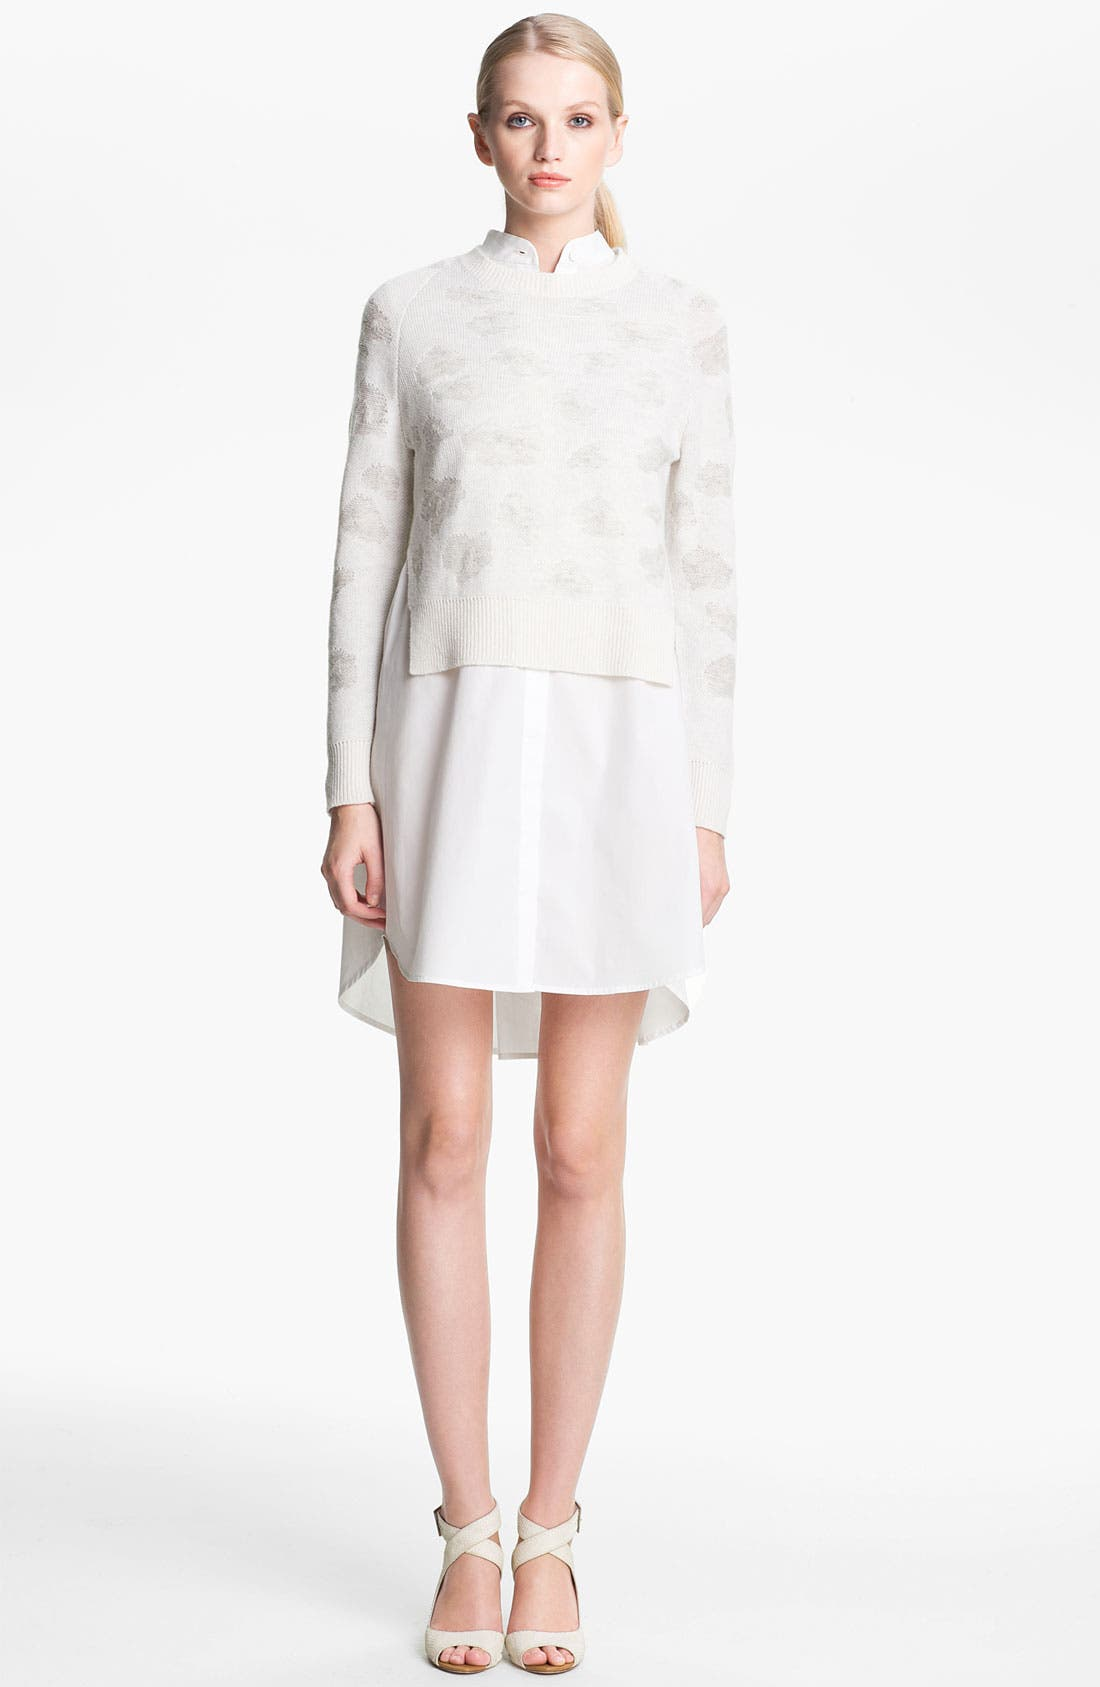 Alternate Image 1 Selected - 3.1 Phillip Lim Layered Dress